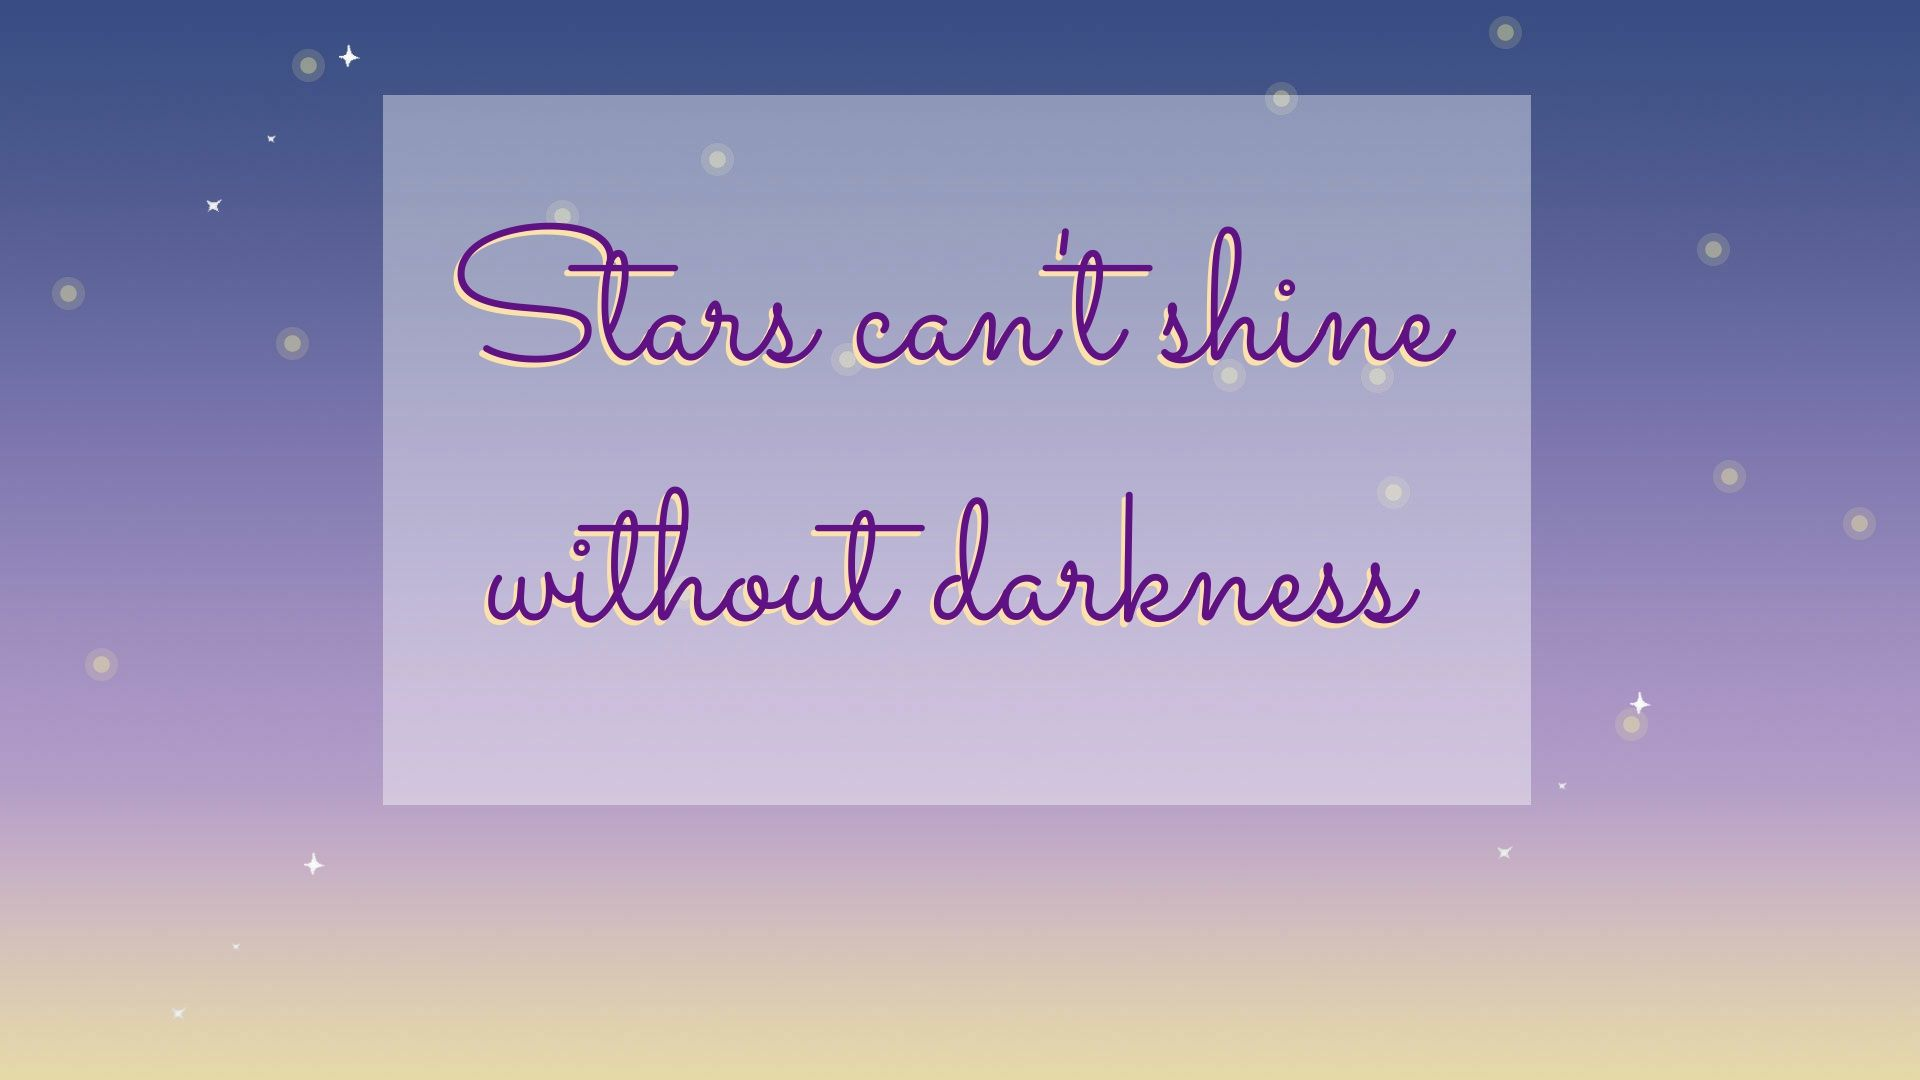 #buncee #quote #inspiration #stars